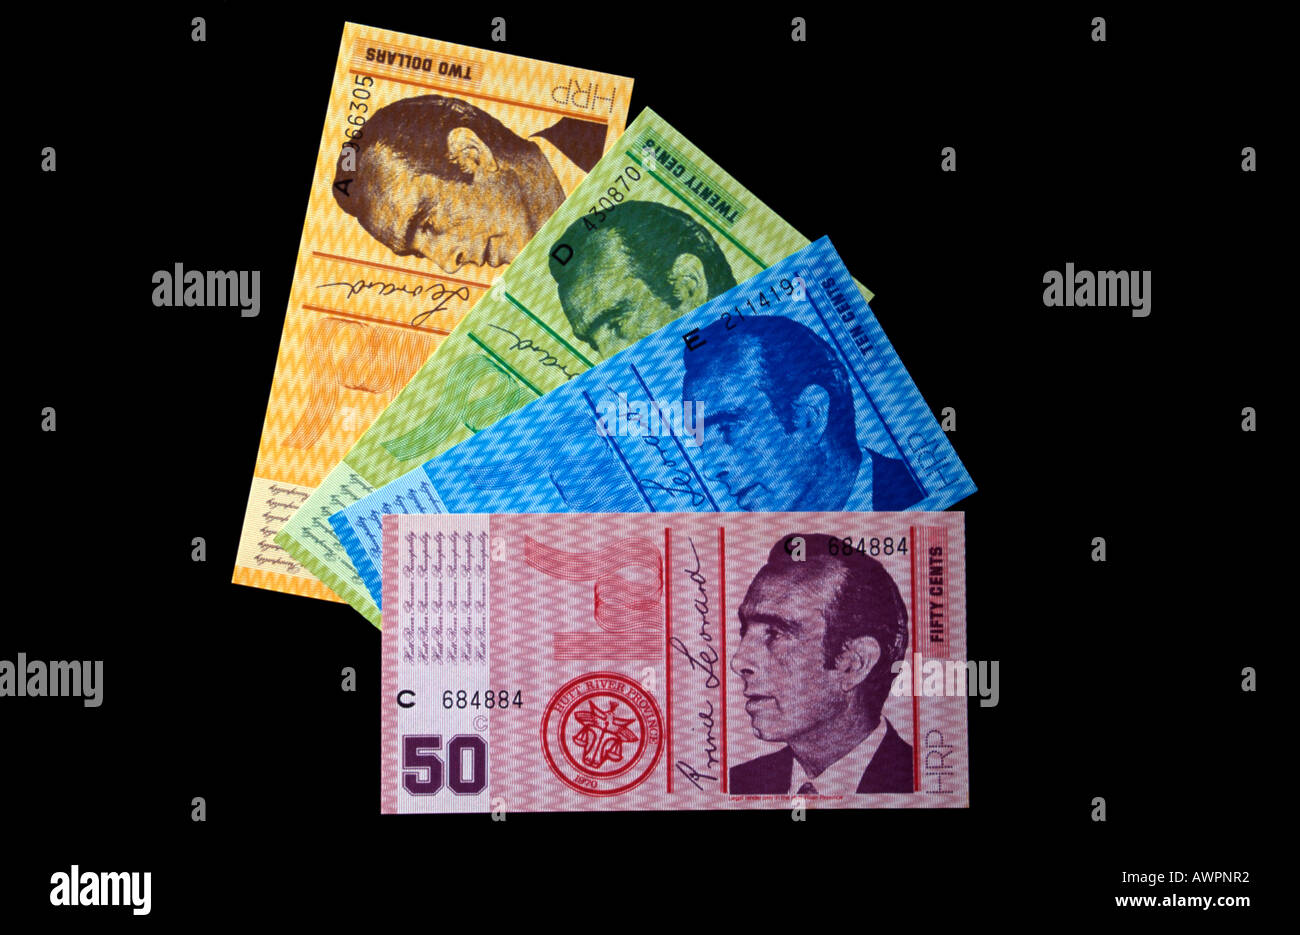 Currency of the Principality of Hutt River, self-declared microstate in Western Australia - Stock Image